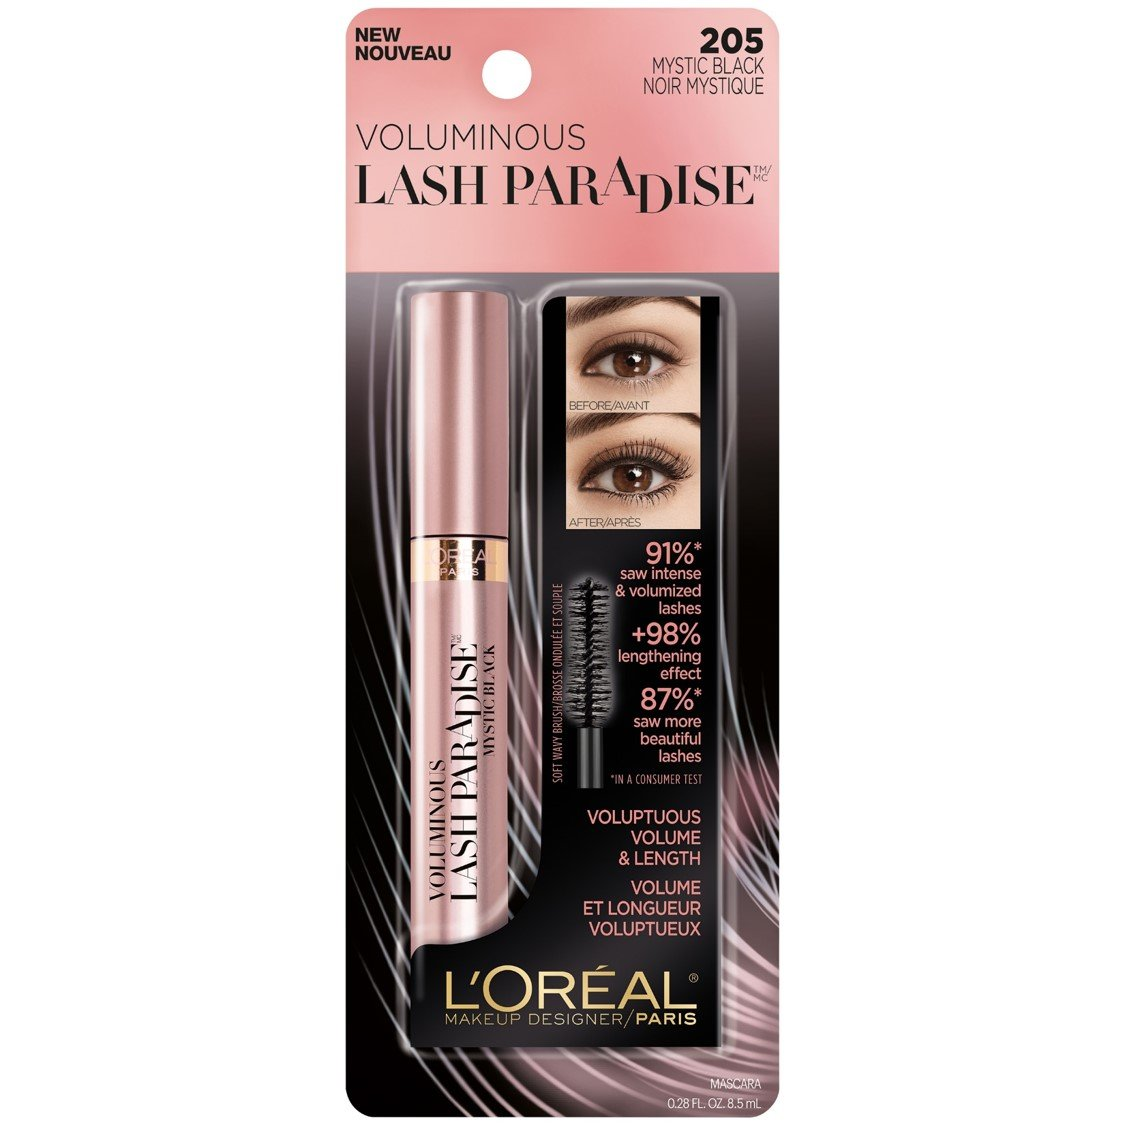 ca55c4719f5 Amazon.com : L'Oreal Paris Makeup Lash Paradise Mascara, Voluptuous Volume,  Intense Length, Feathery Soft Full Lashes, No Flaking, No Smudging, No  Clumping, ...